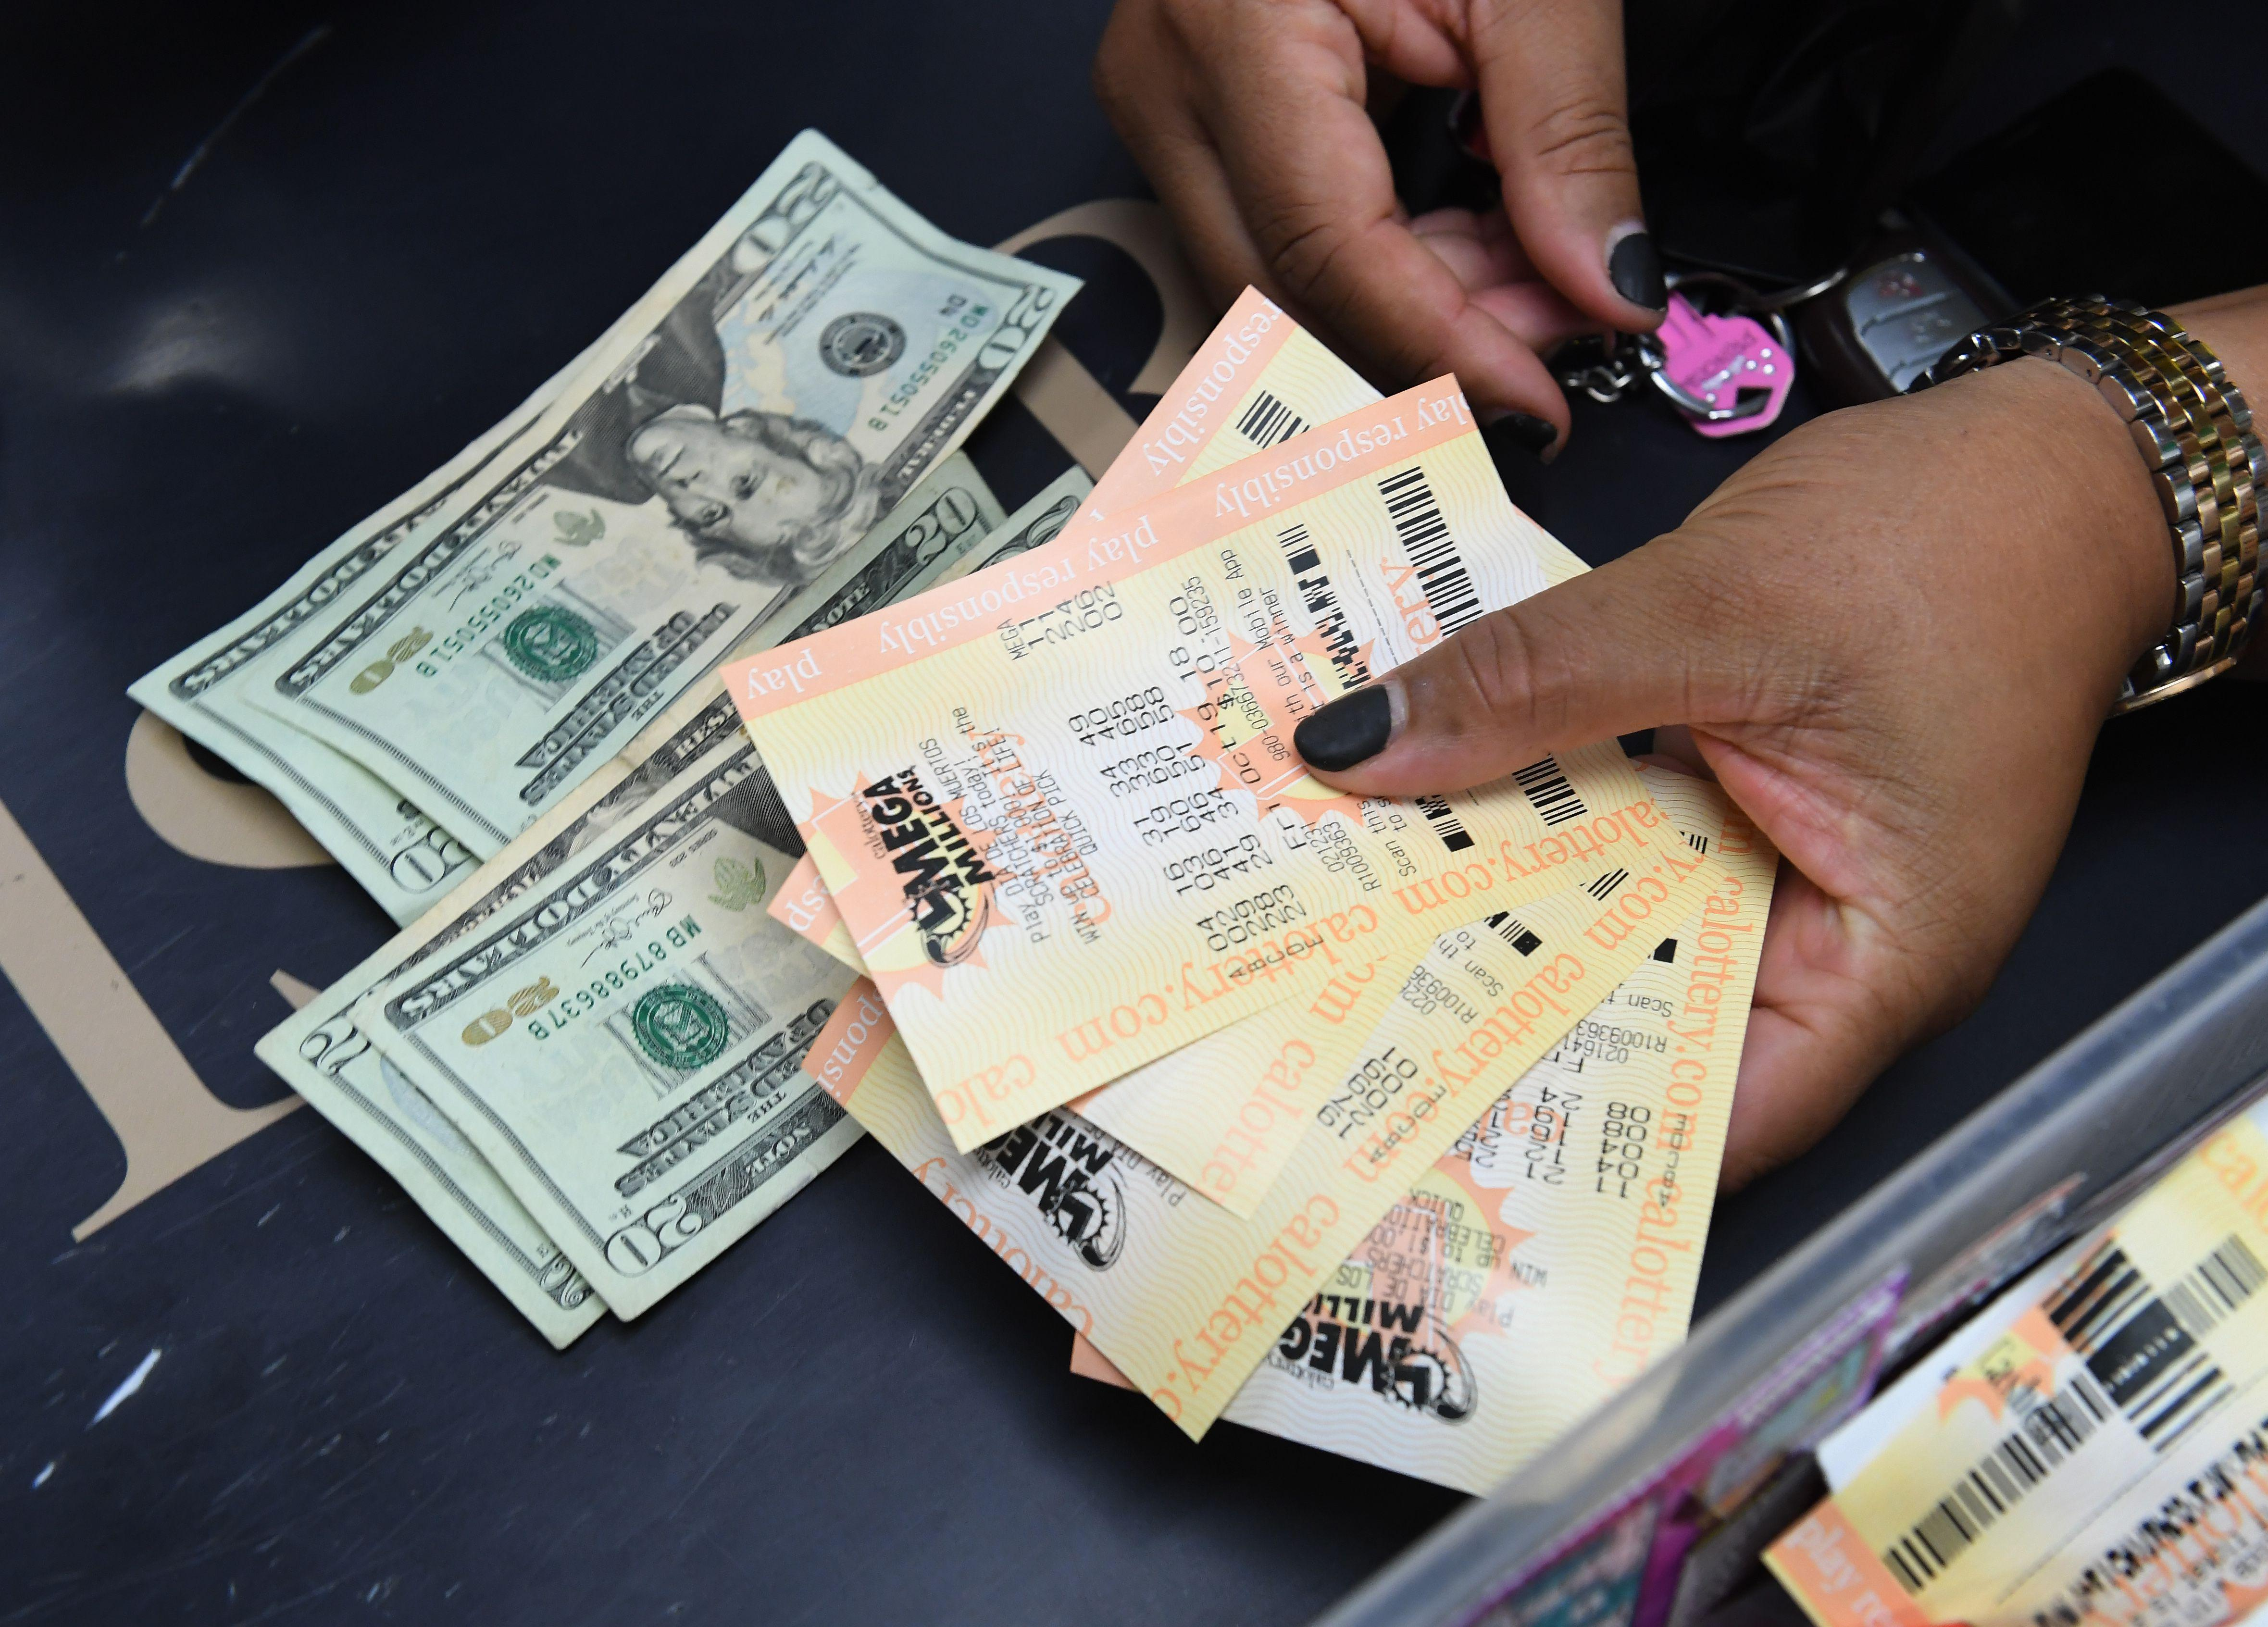 A woman's hand holds out four Mega Millions tickets. On the counter below her hand are a small stack of $20 bills.